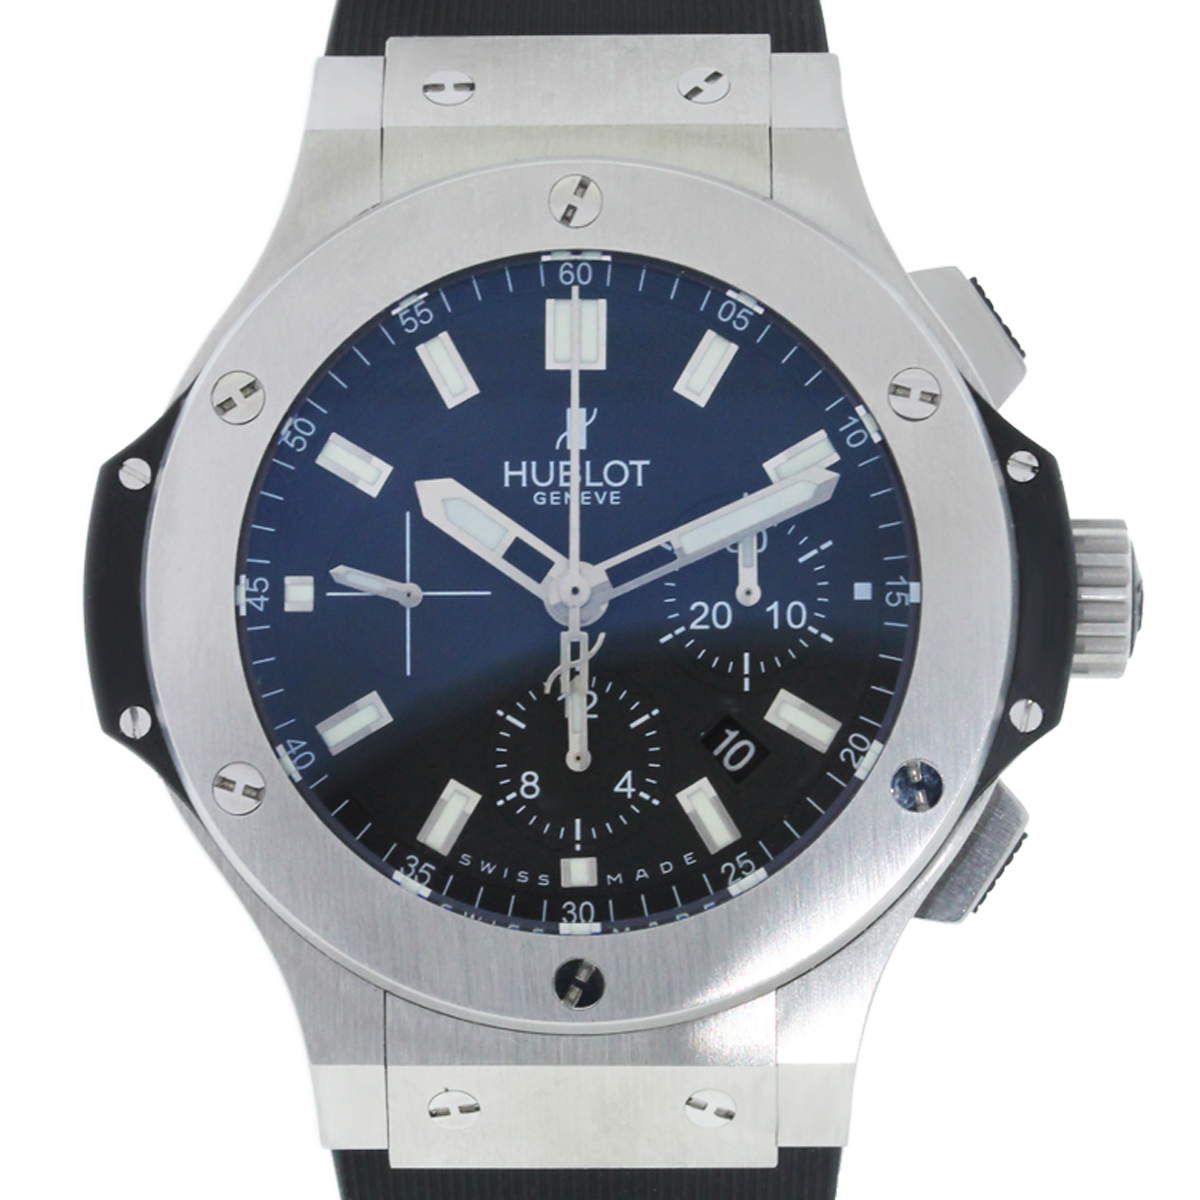 You are Viewing this Hublot Big Bang Evolution Watch